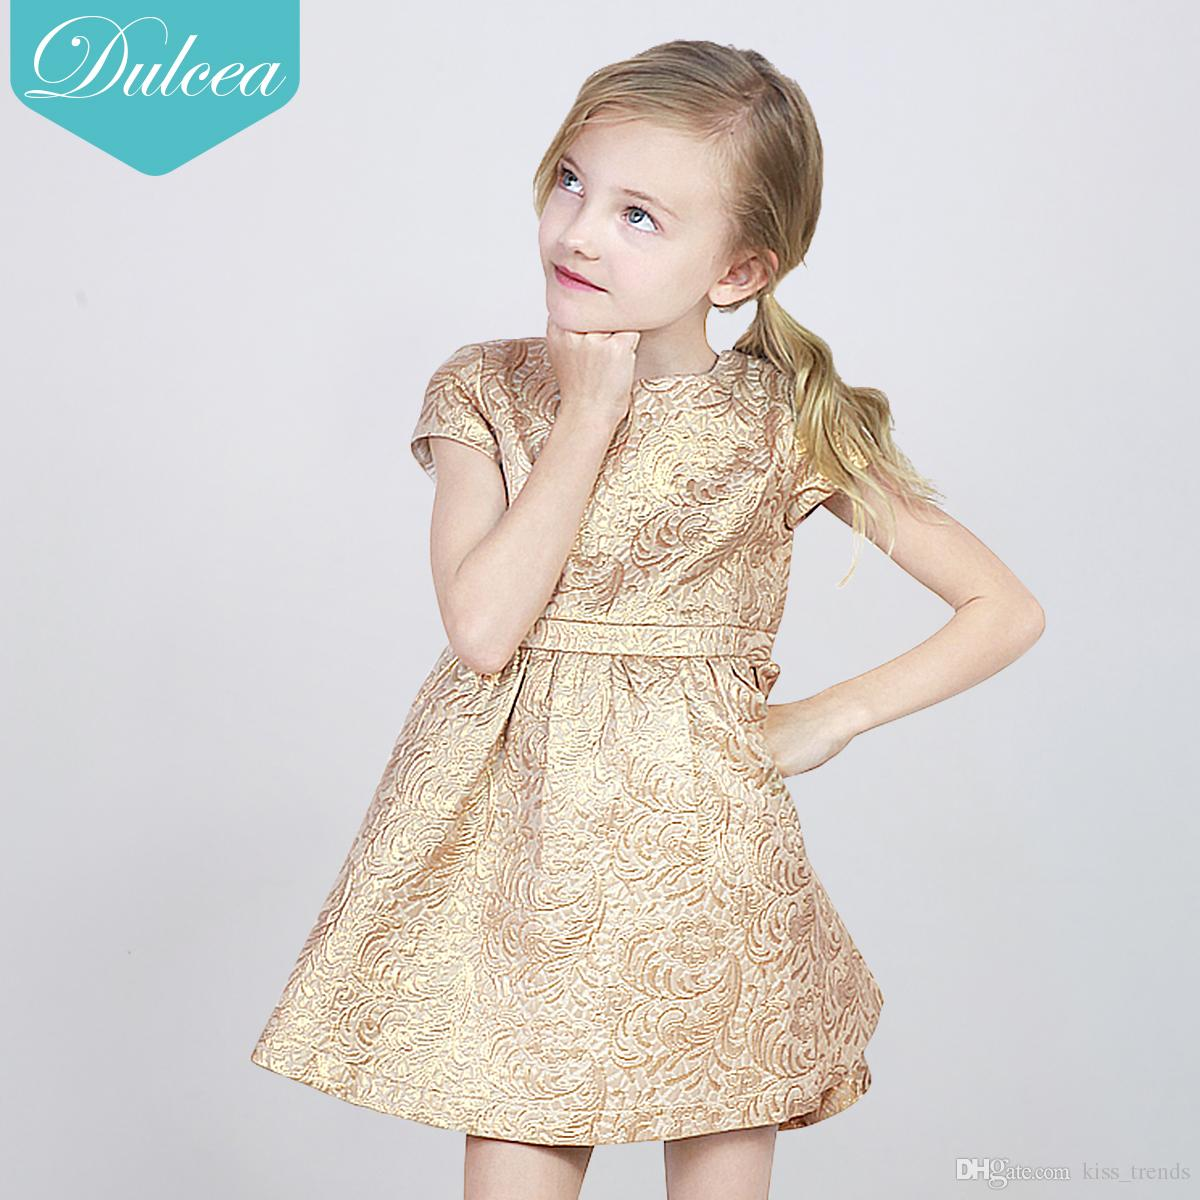 2018 dulcea hot sale cute baby girl gold dress tutu jacquard skirt